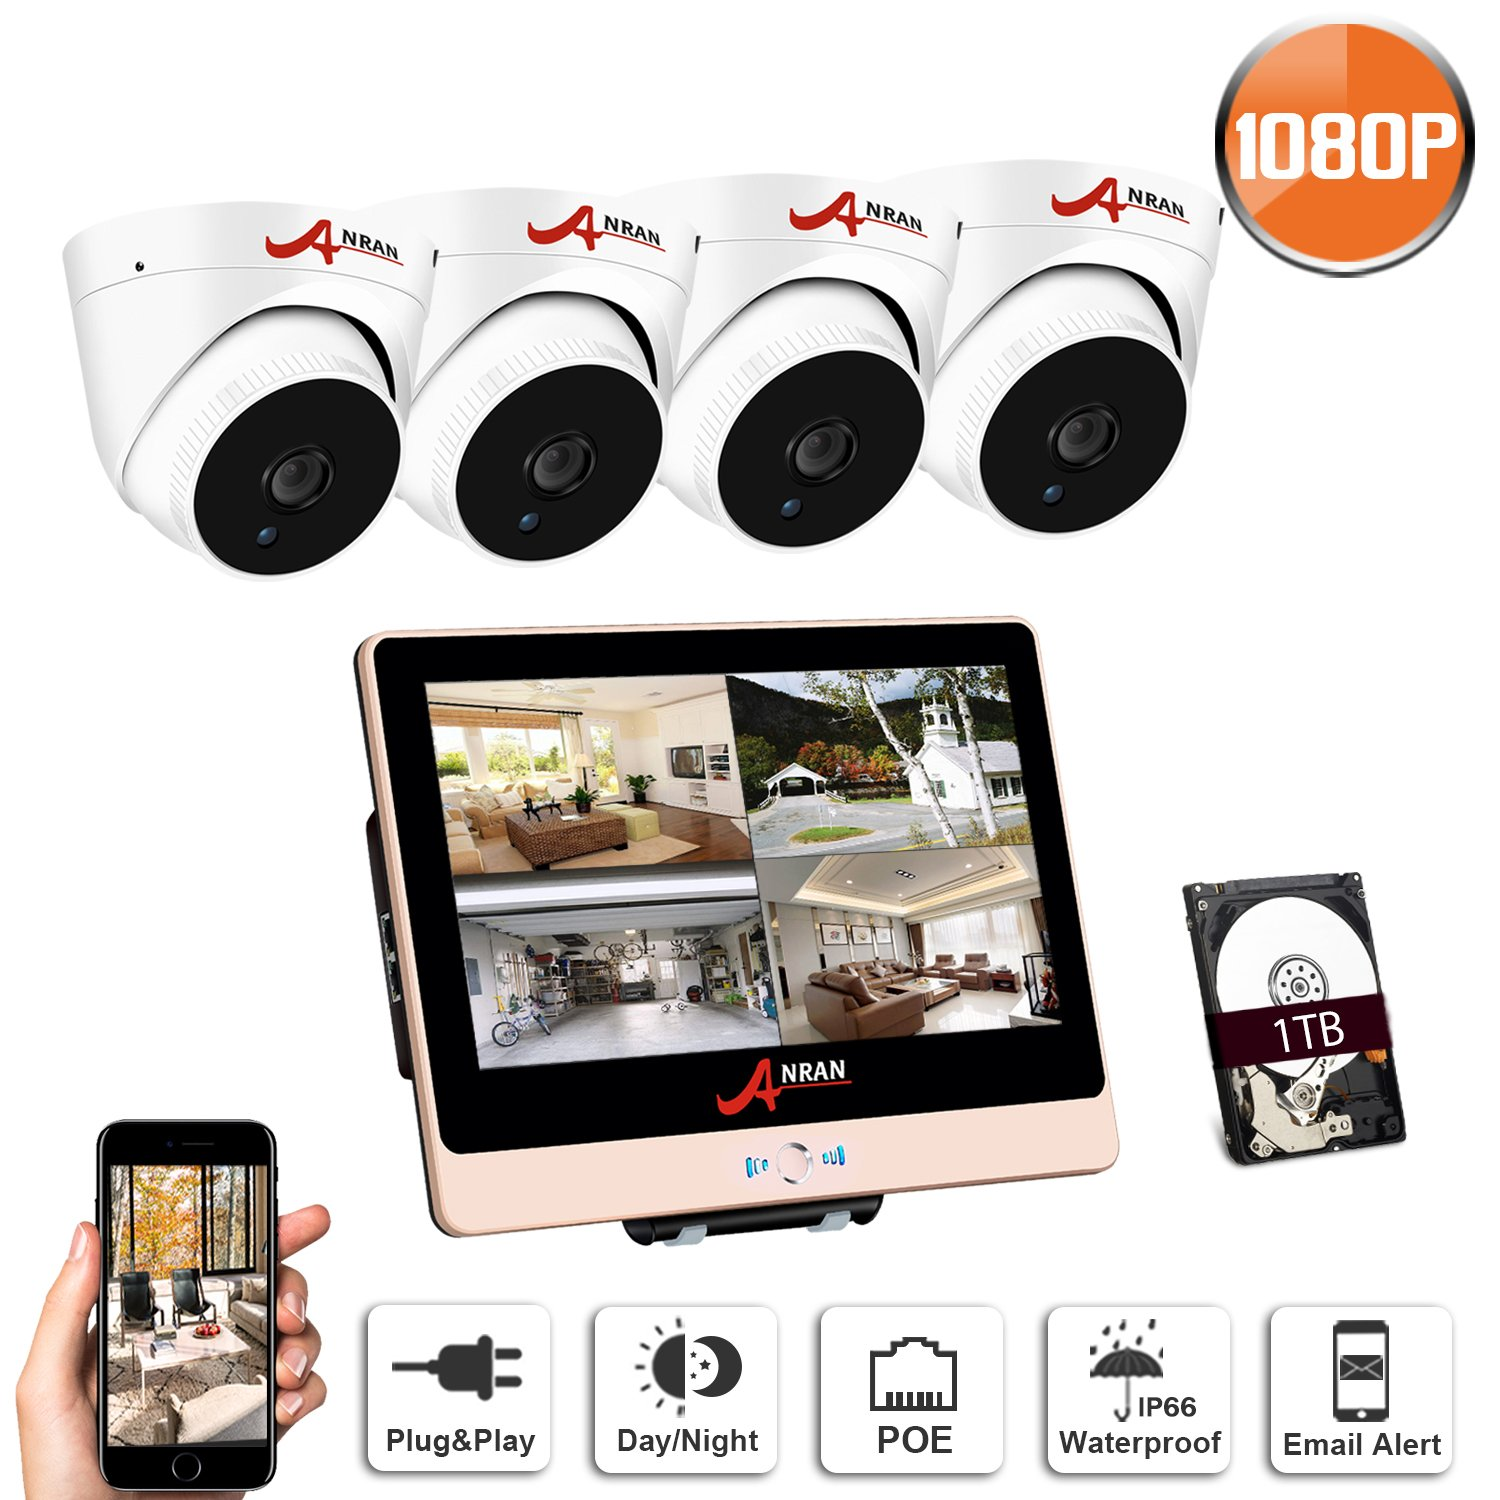 ANRAN PoE Surveillance Video Security Cameras System with 4 HD 1080P Outdoor Dome Cameras 8 Channel 12 Inch LCD Monitor NVR 1TB Hard Drive Storage Plug and Play Remote Access Motion Detection SWINWAY